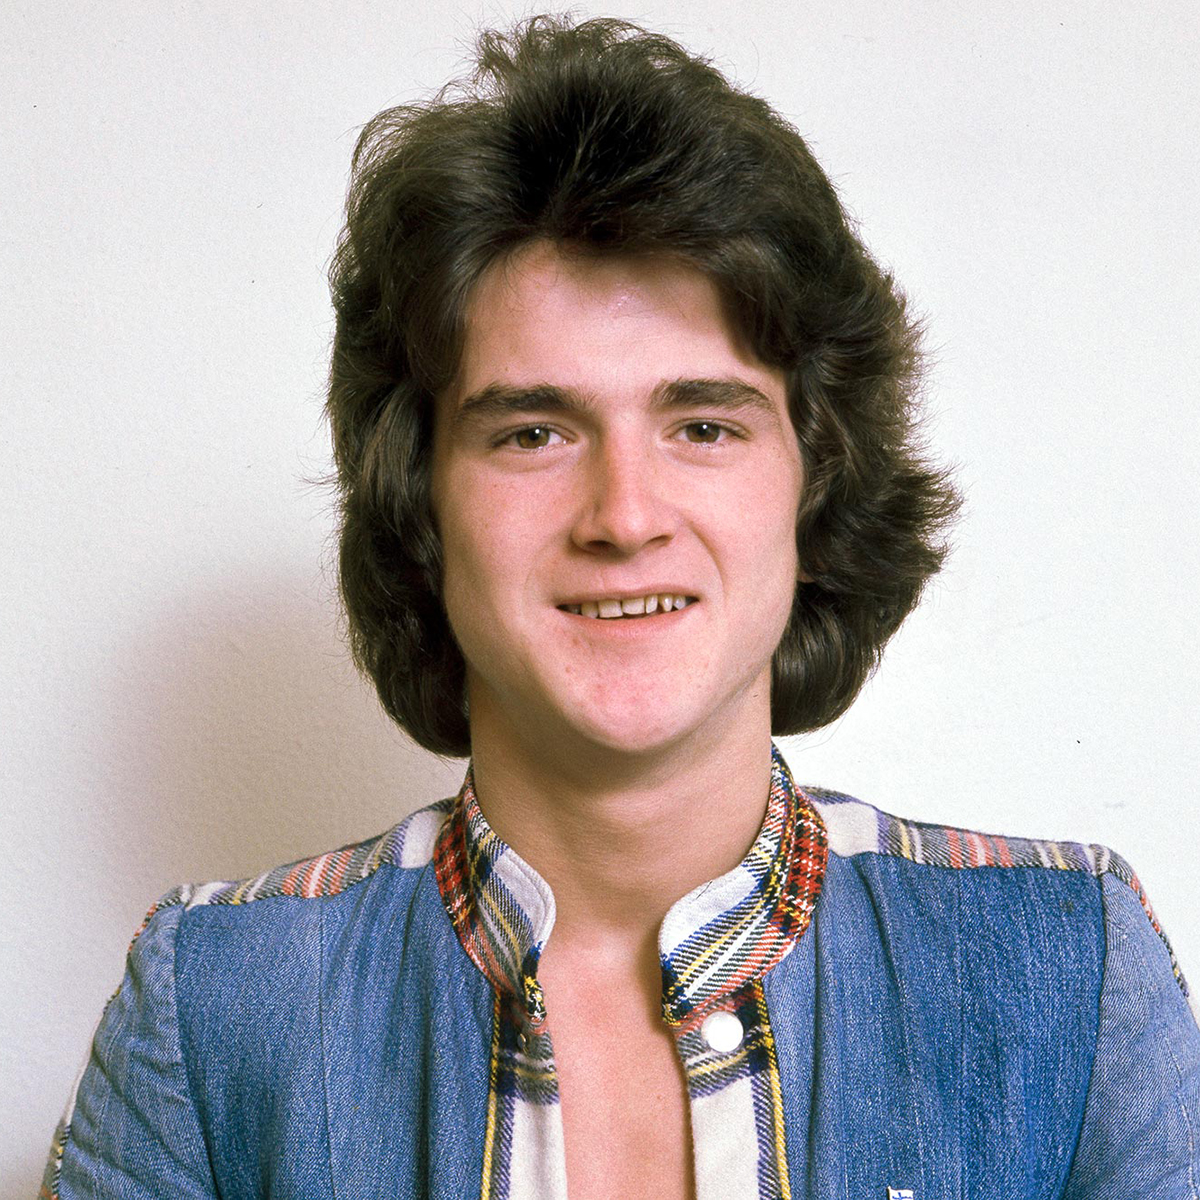 Les McKeown from Bay City Rollers Facebook